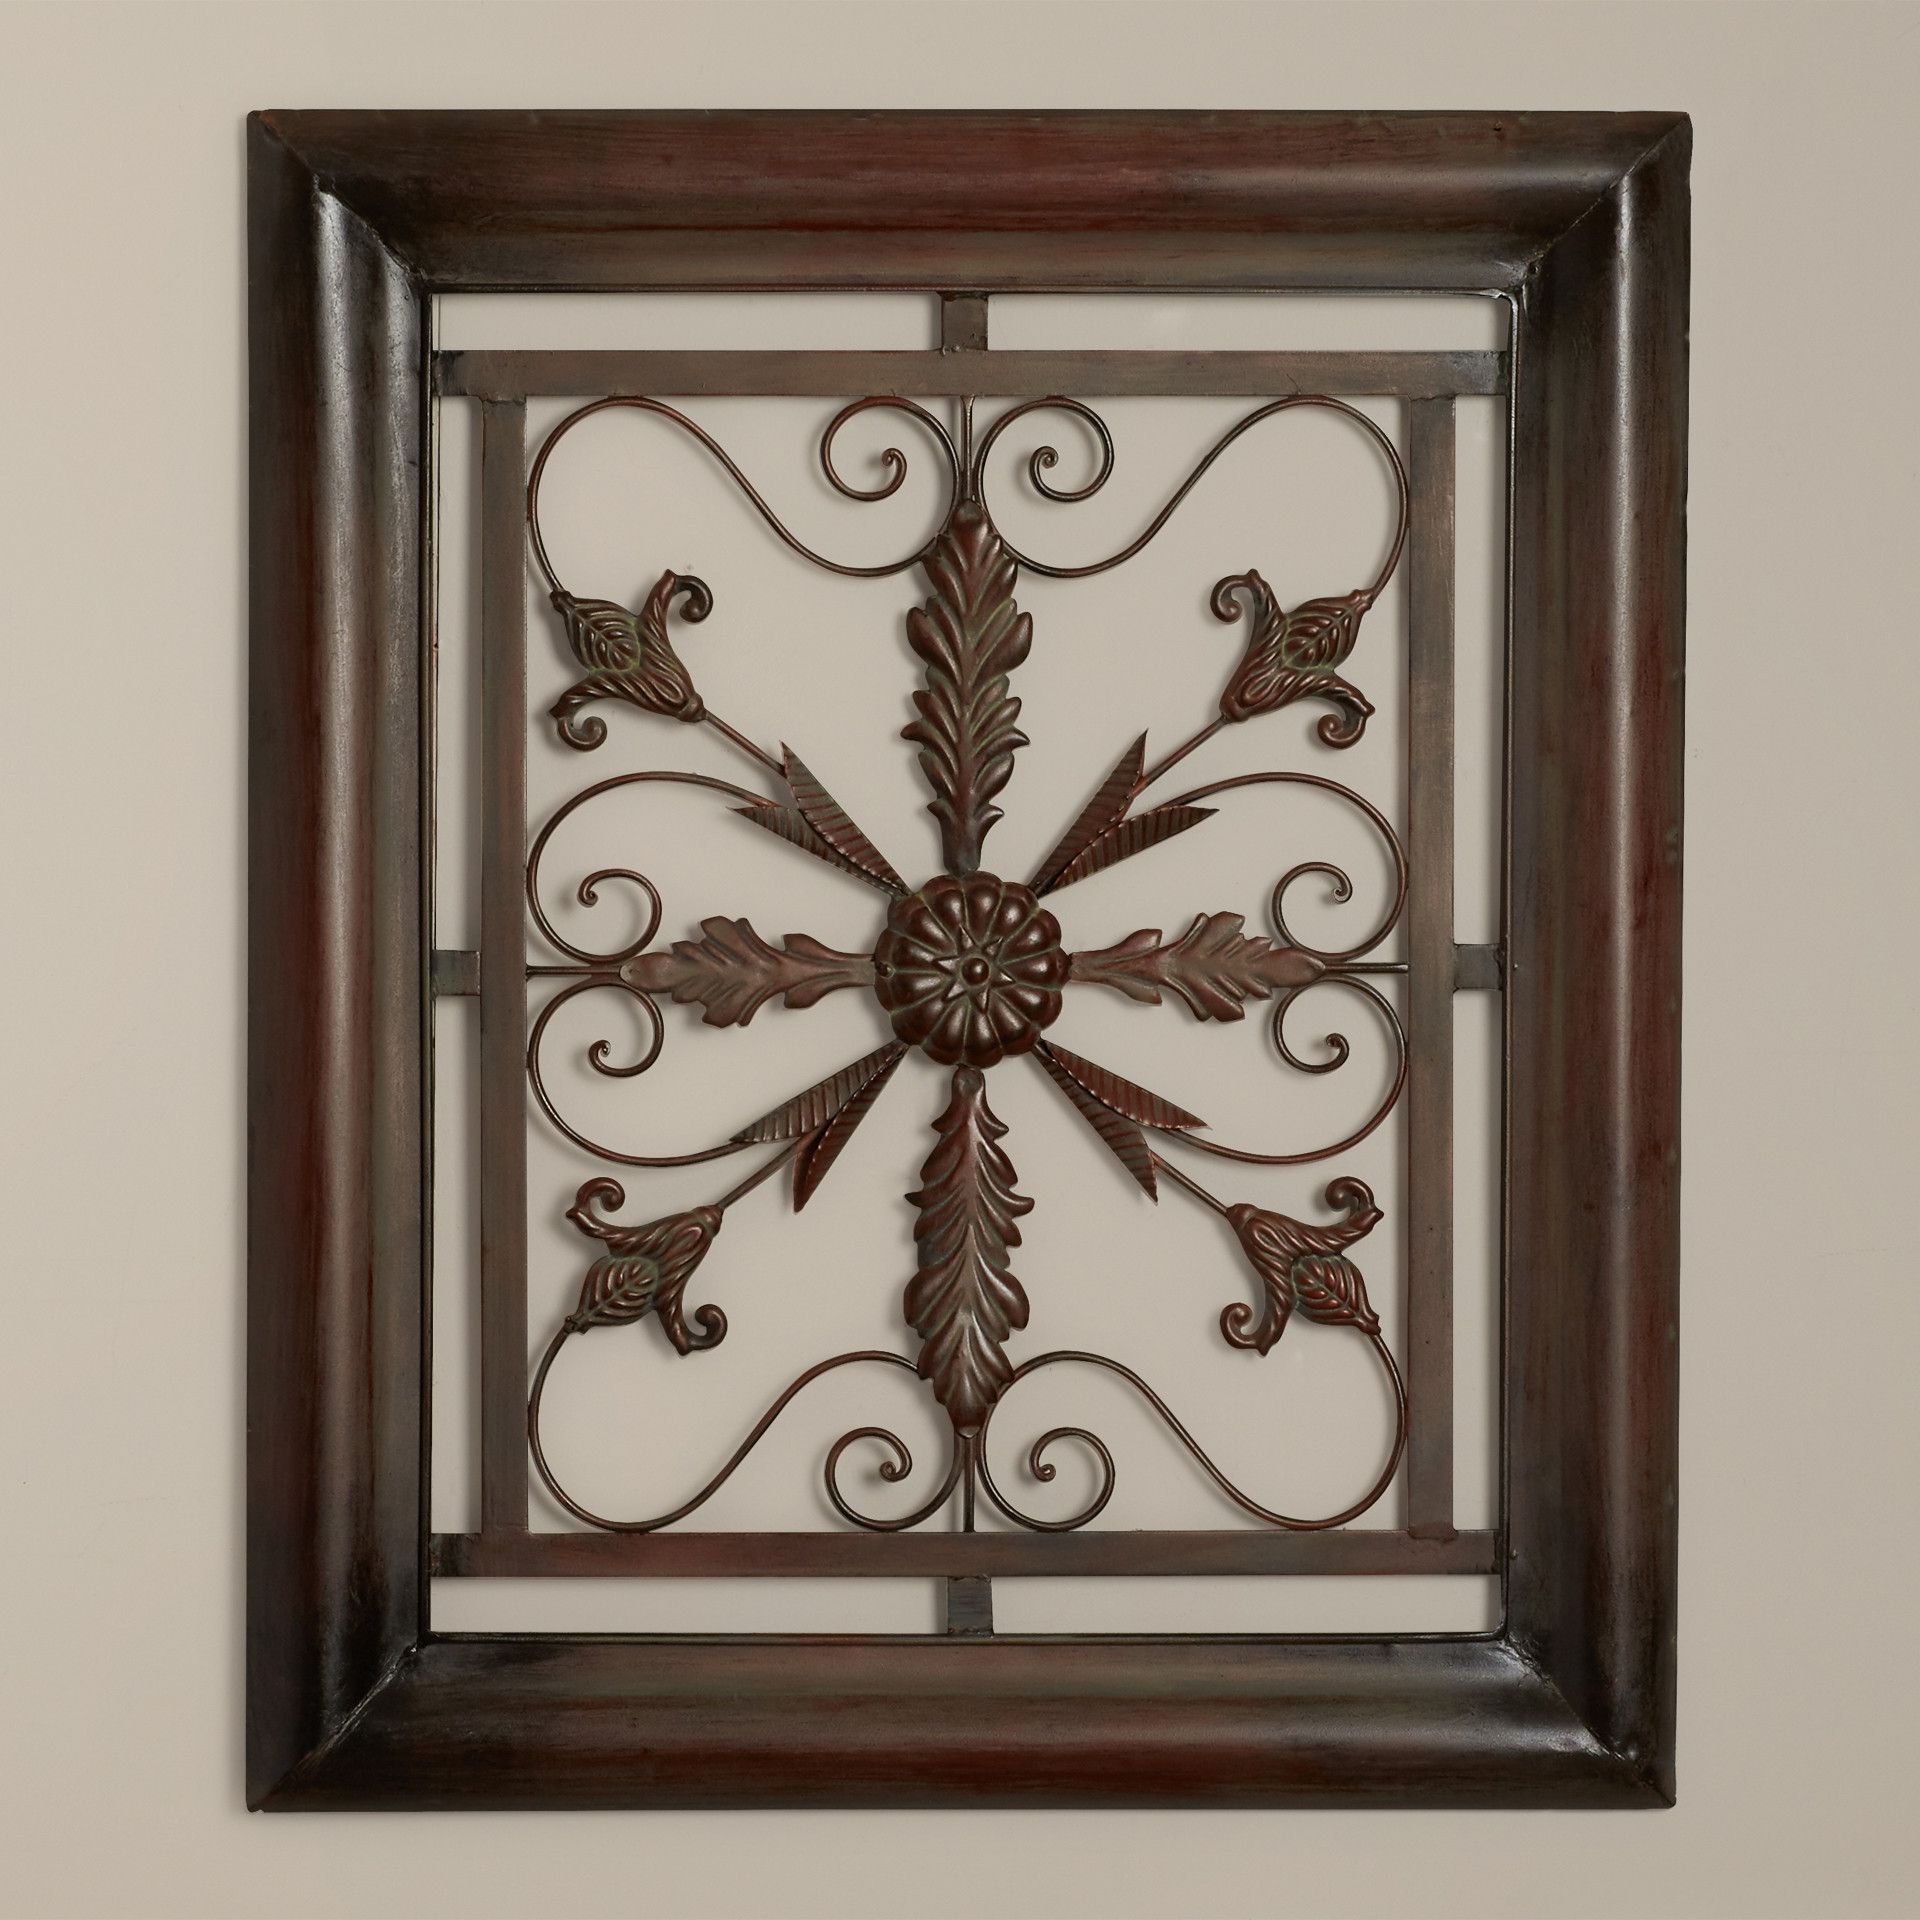 Newest Wall Décor By Charlton Home Pertaining To Charlton Home® Bayliss Square Scroll Wall Decor (View 6 of 20)